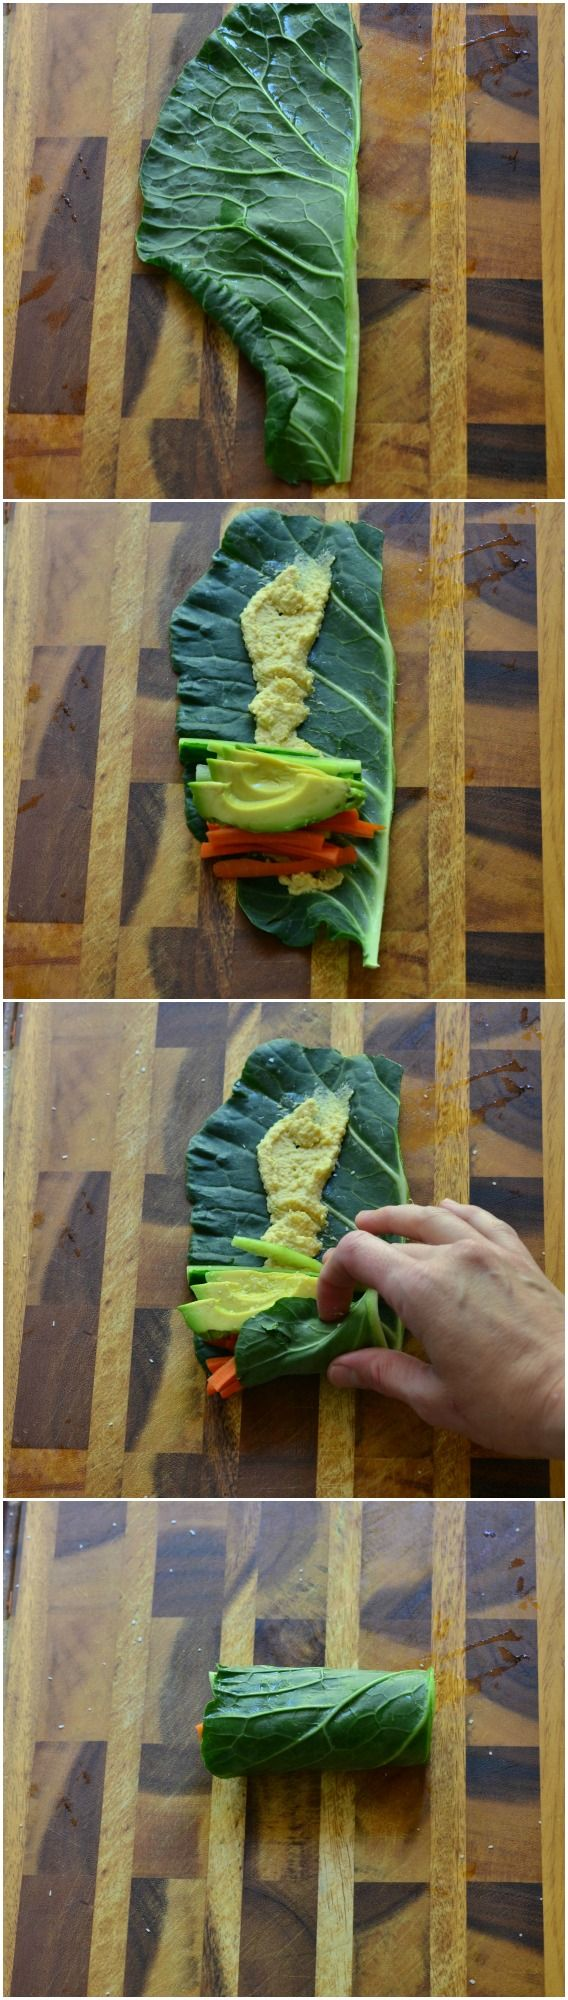 This is your #5 Top Pin in the Vegan Community Board in April: Fresh Veggie Collard Wraps - 332 re-pins!!! (You voted with yor re-pins). Congratulations @PancakeWarrior_ ! Vegan Community Board https://www.pinterest.com/heidrunkarin/vegan-community/